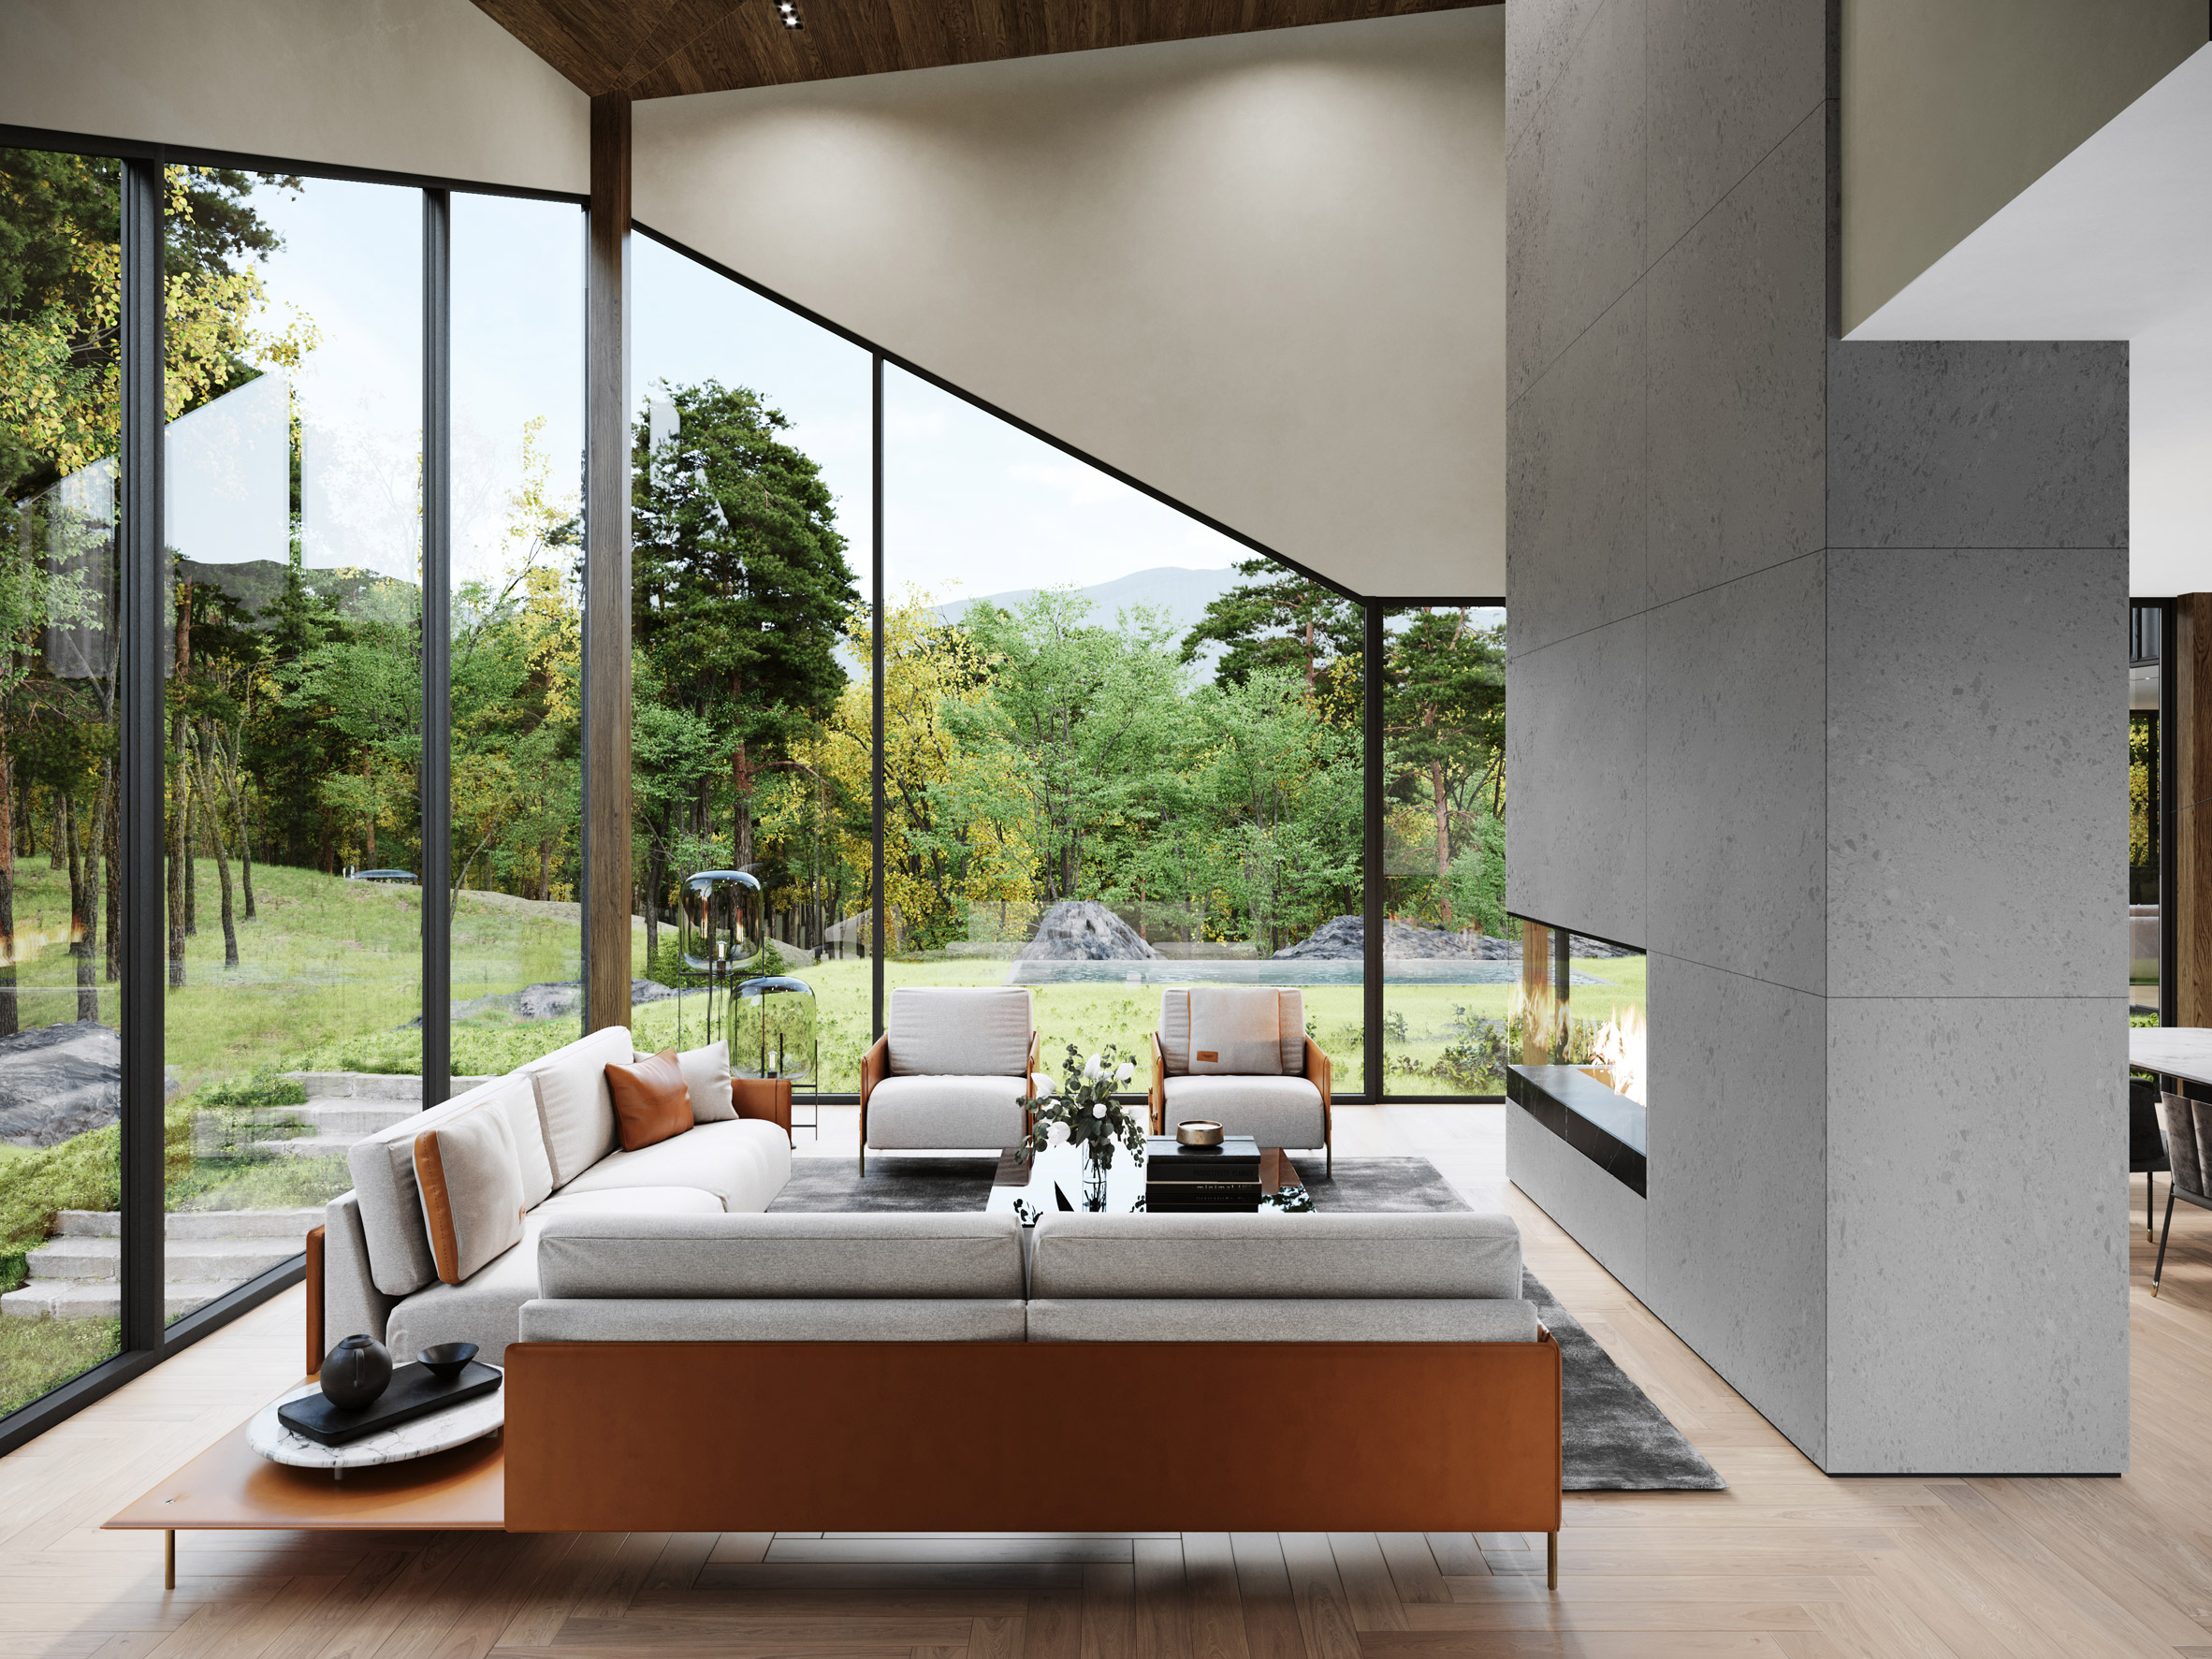 Salón / S3 Architecture/Corcoran Country Living